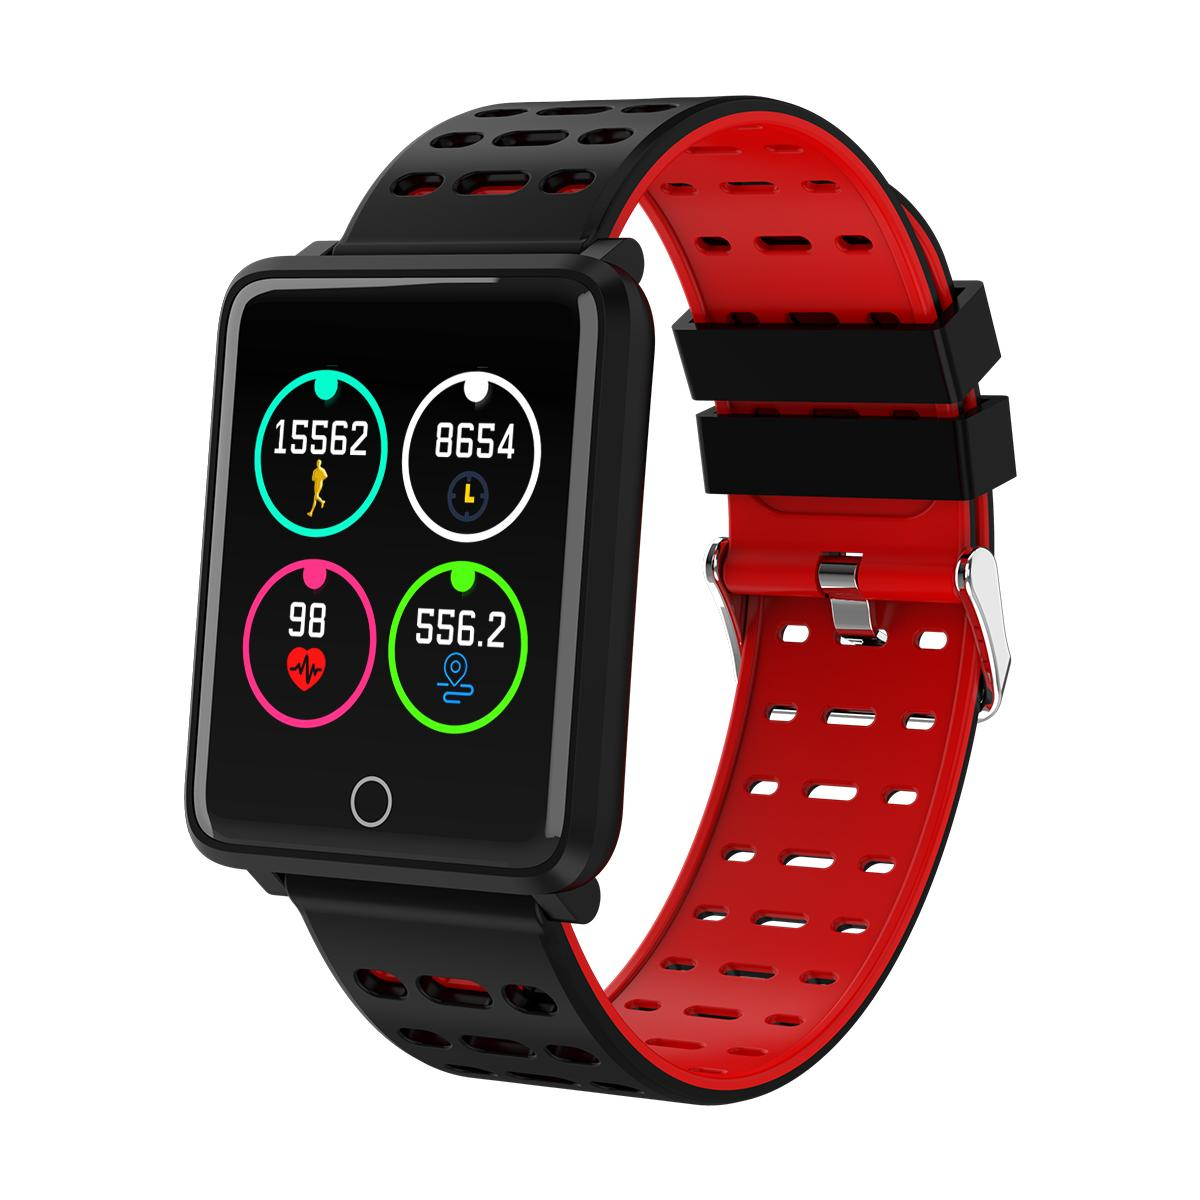 IP68 Waterproof 1.44 Inches Smart Watch Fitness Tracker Bluetoot Bracelet Watch Sleep Tracker Heart Rate Monitor Smartwatch For IOS Android